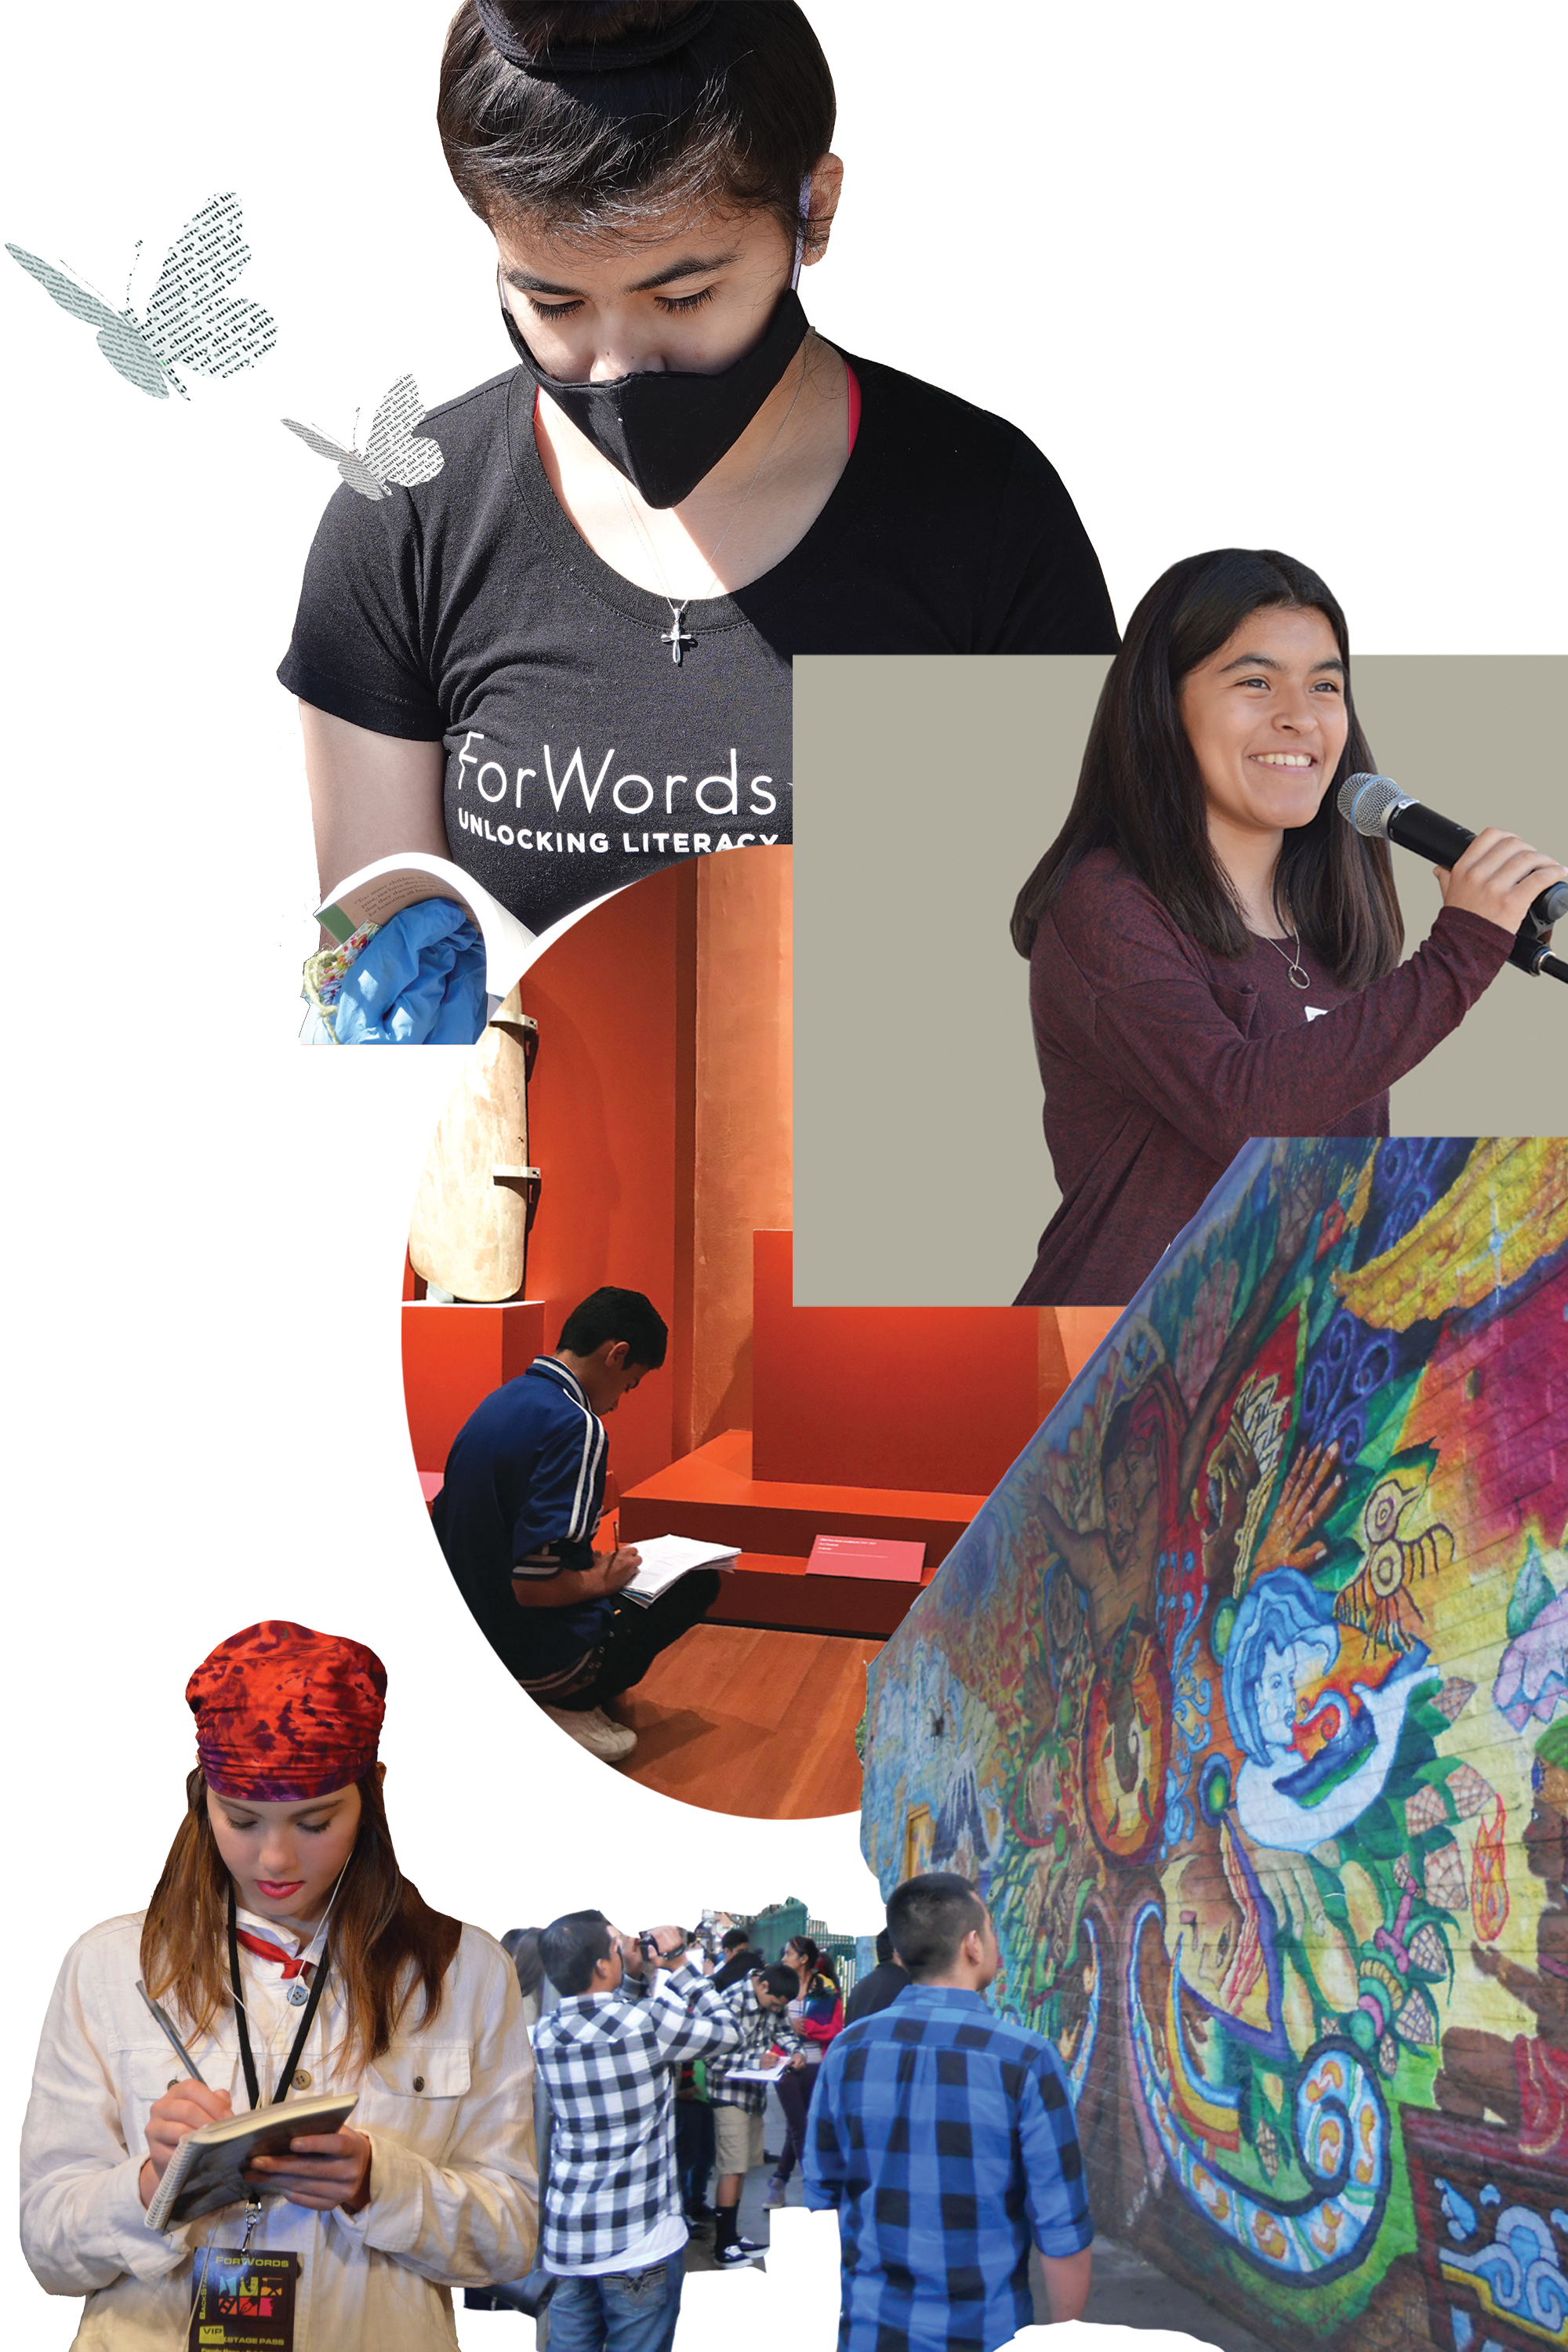 forwords students different locations